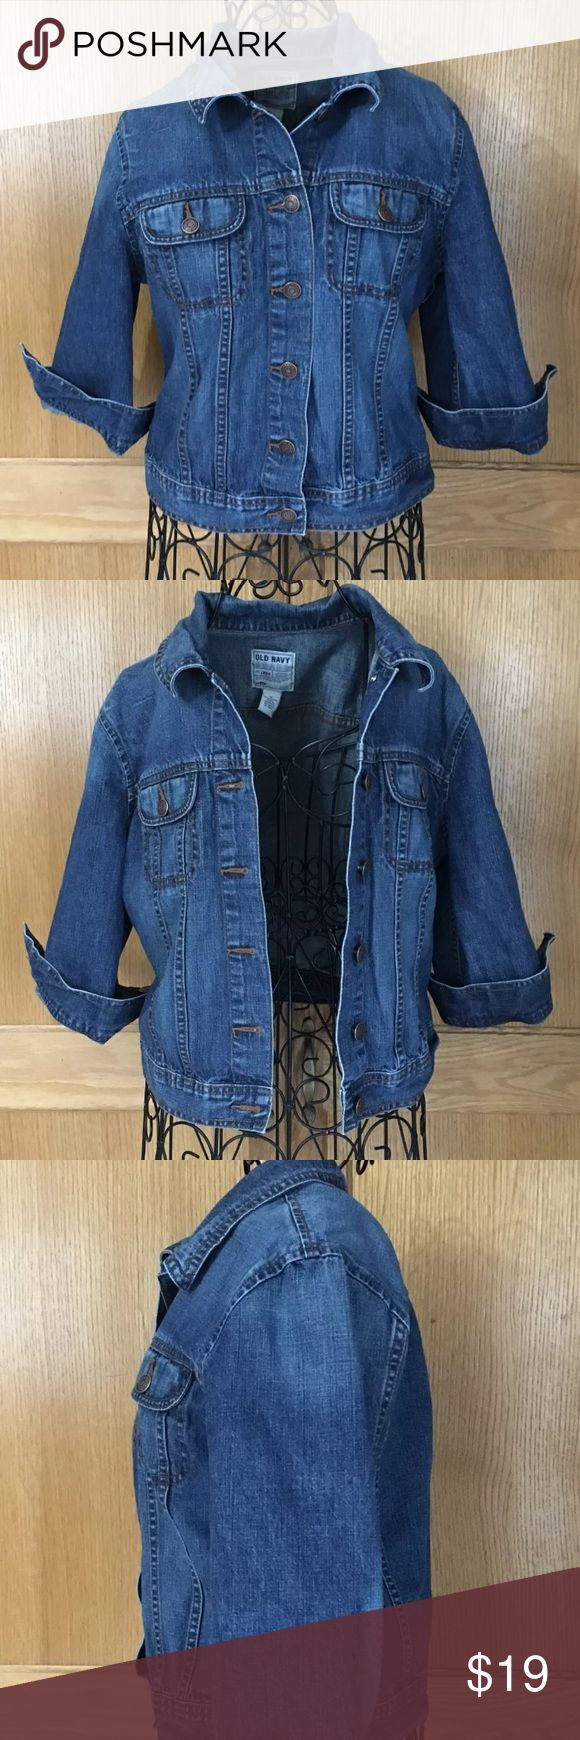 Old Navy Womens Jean Jacket Size M Color Blue Old Navy Womens Jean Jacket Size M Color Blue Old Navy Jackets & Coats Jean Jackets